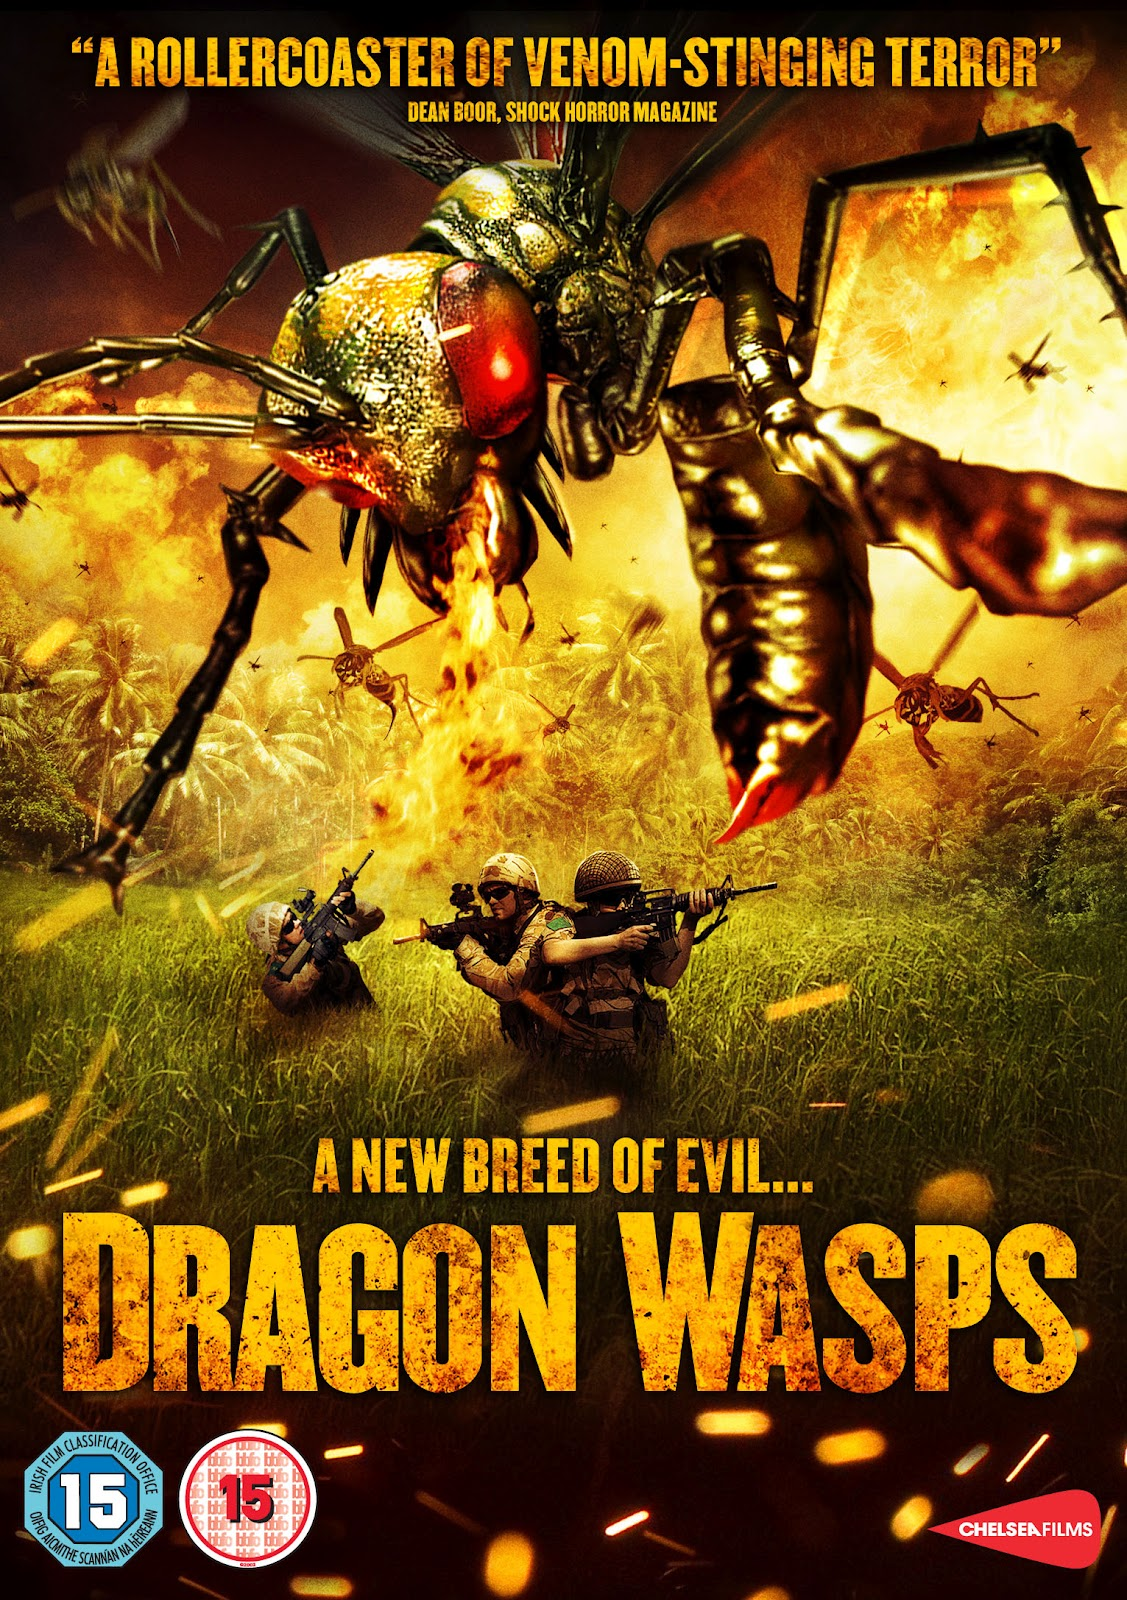 Dragon Wasps (2012)